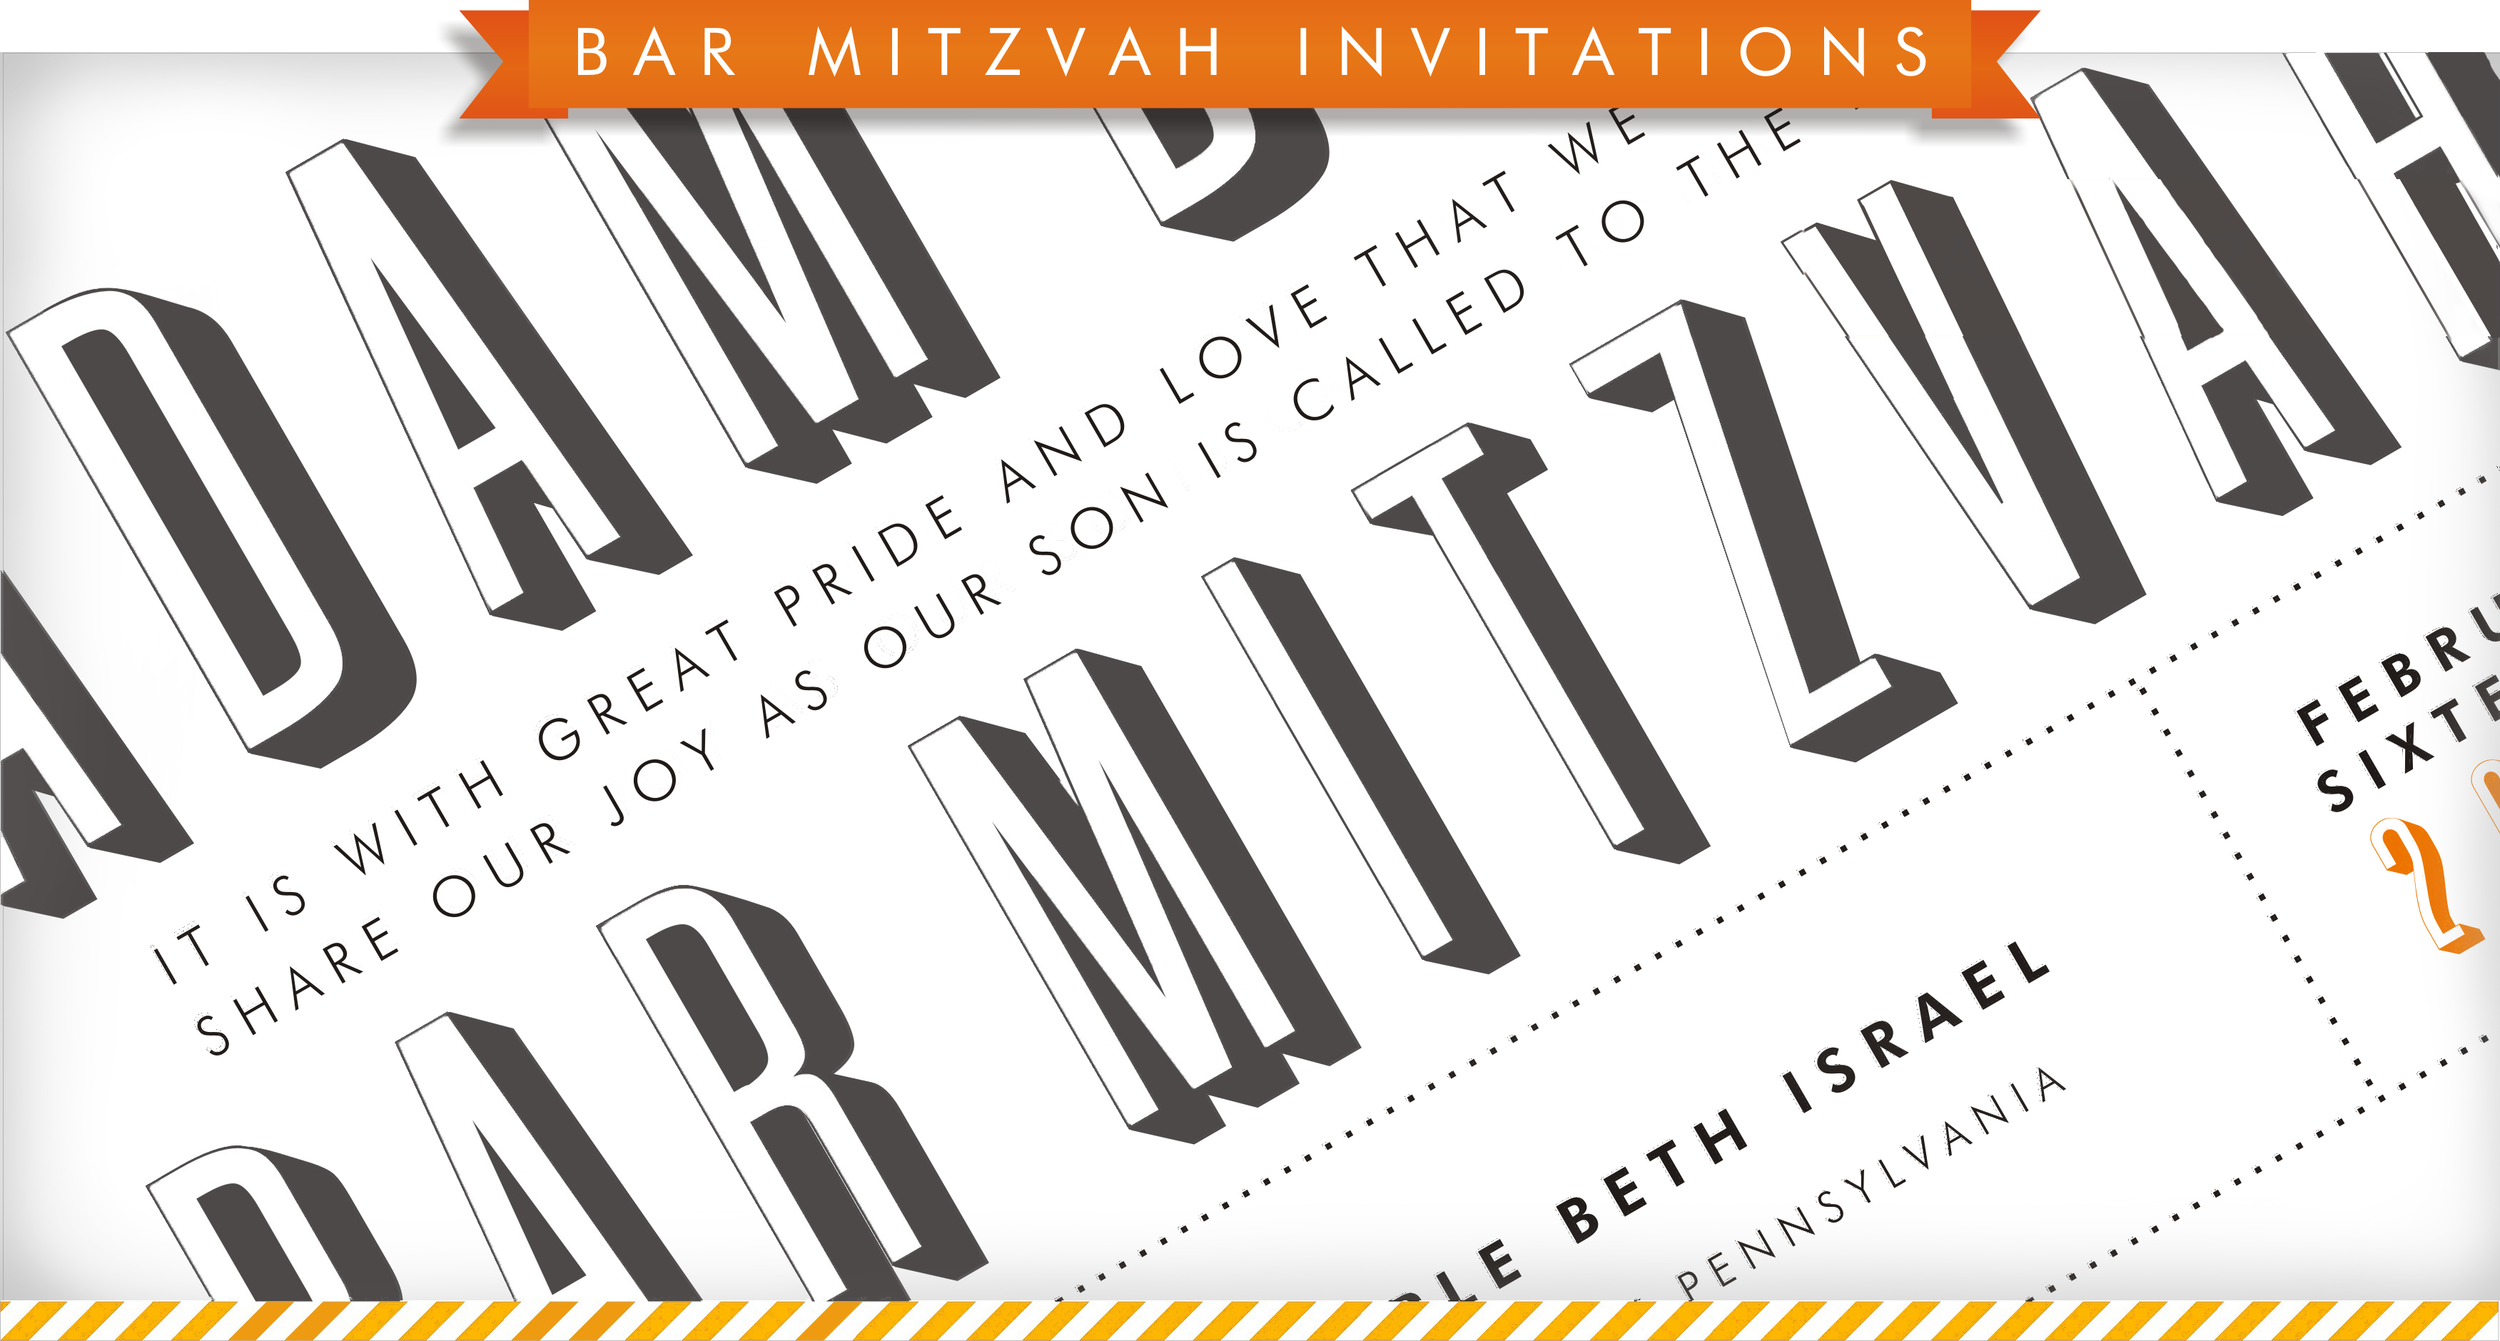 BAR INVITATIONS.png